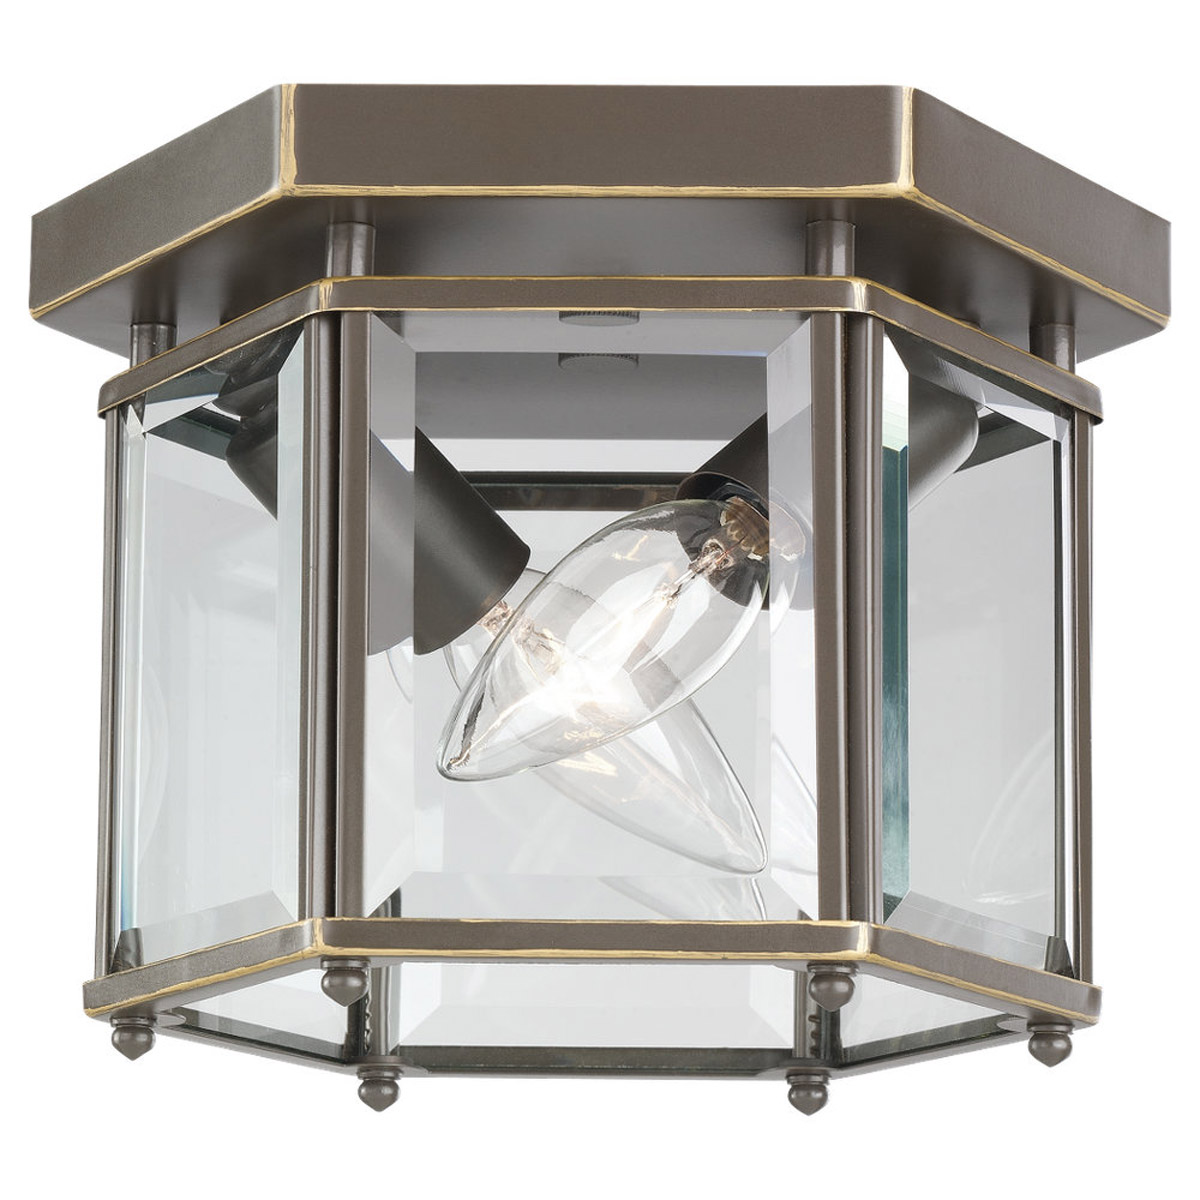 Sea Gull Lighting Bretton 2 Light Flush Mount in Heirloom Bronze 7647-782